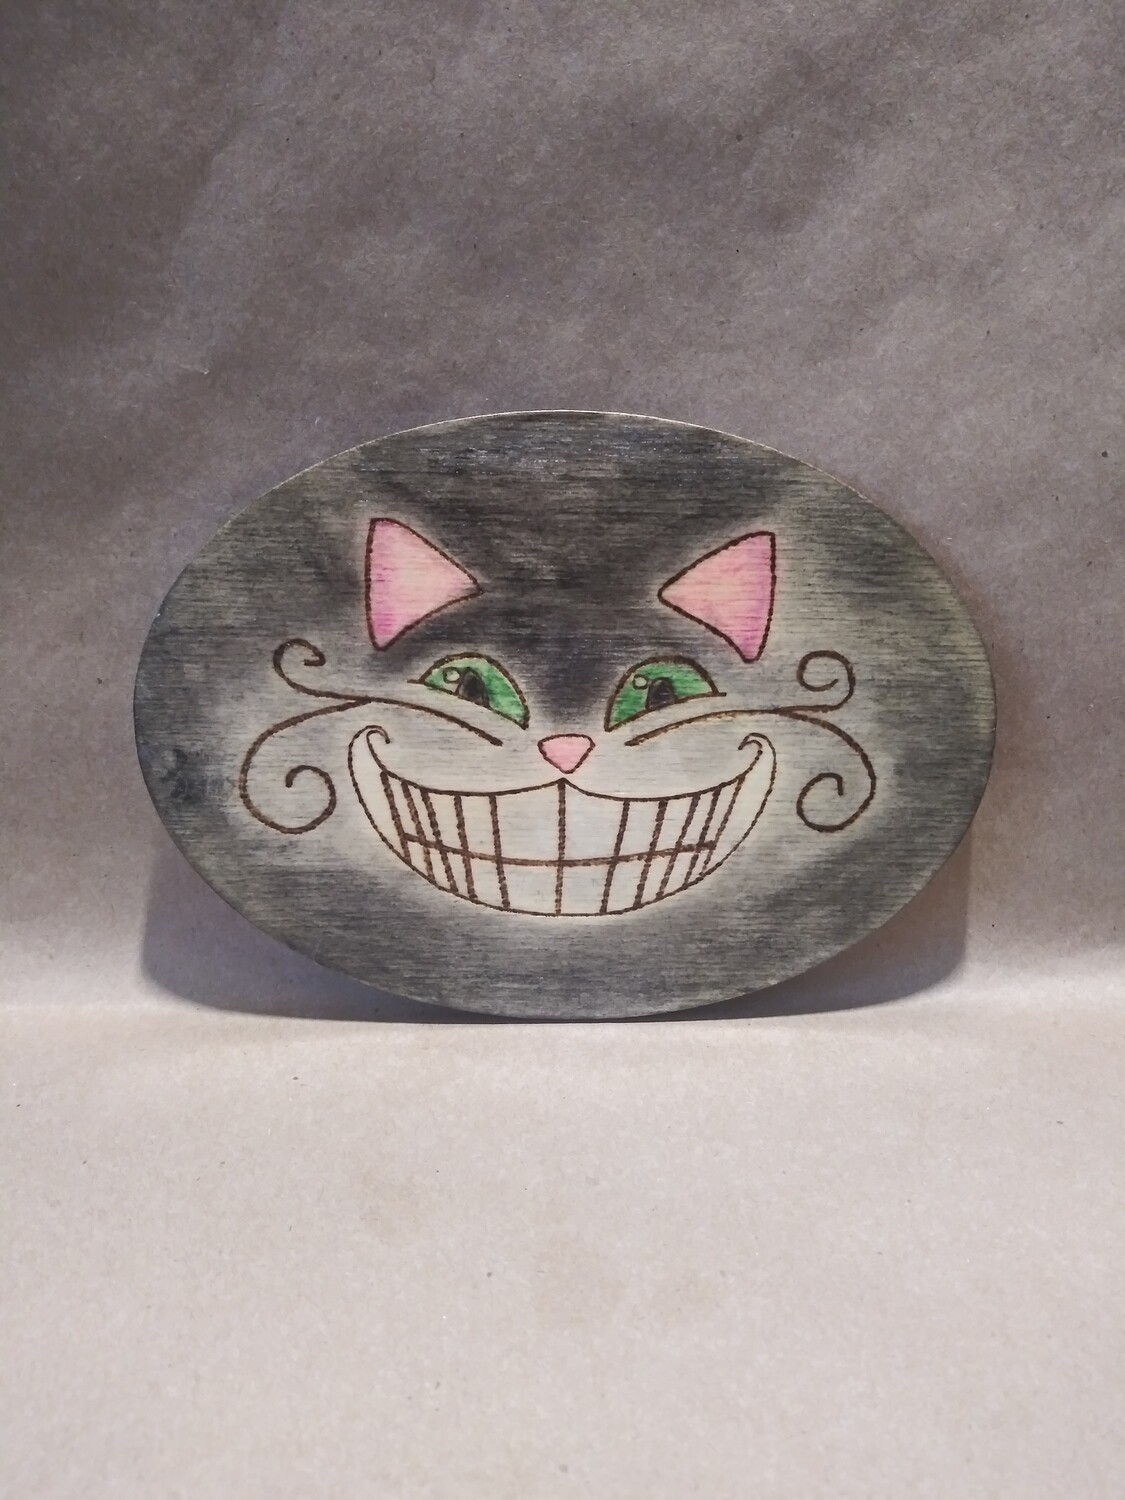 Cheshire Grin